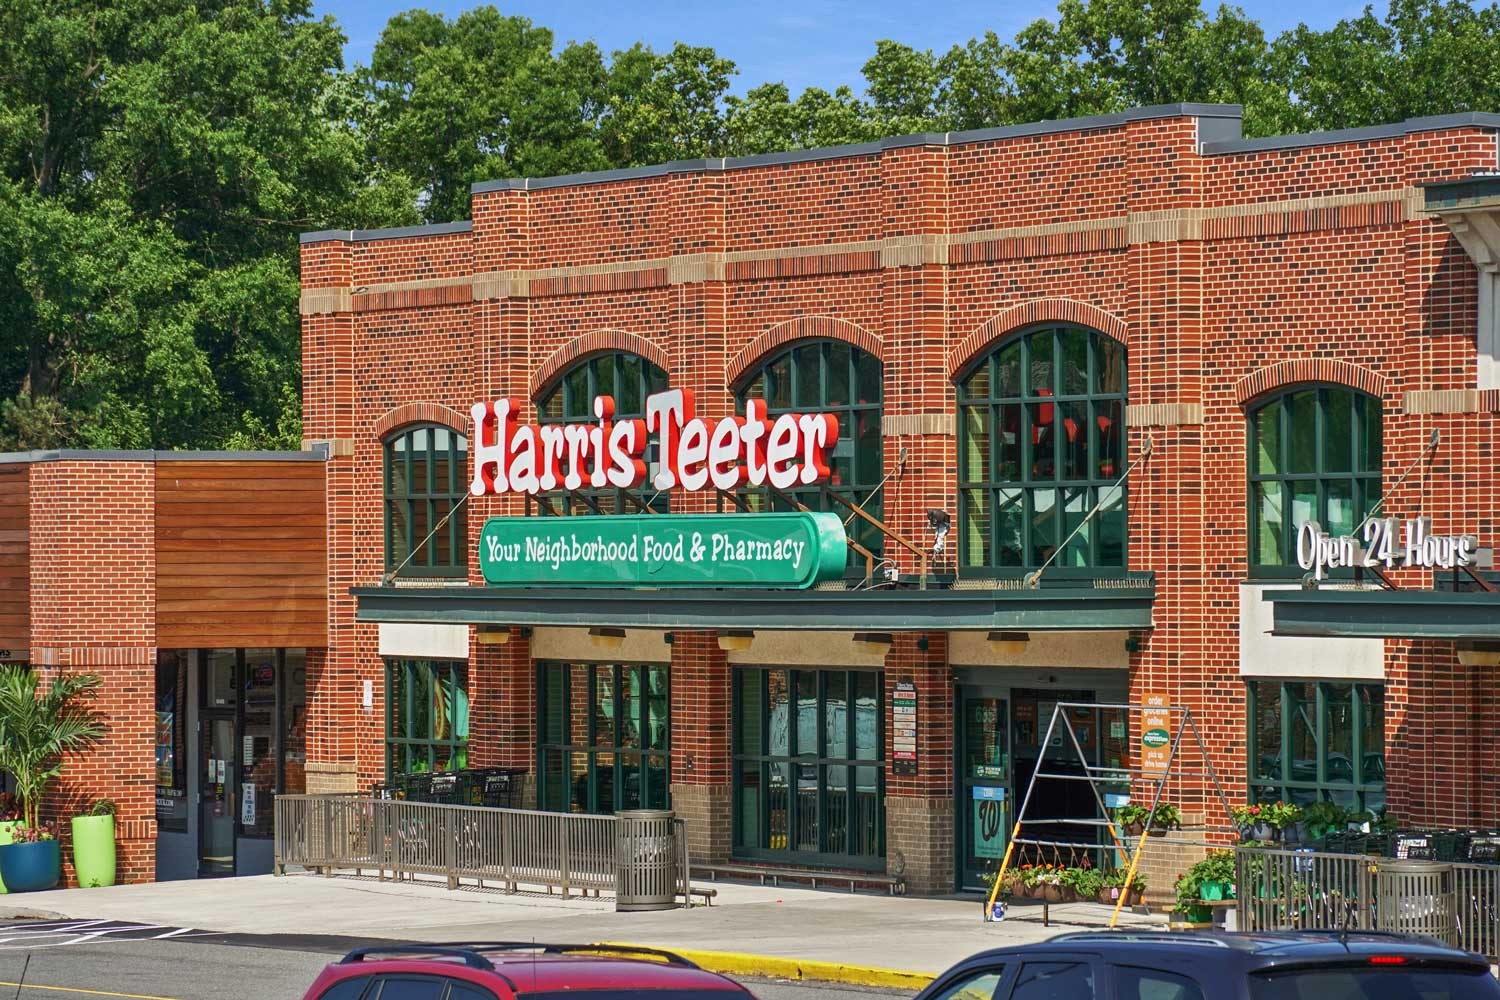 Harris Teeter is 5 minutes from Barcroft Plaza Apartments in Falls Church, VA